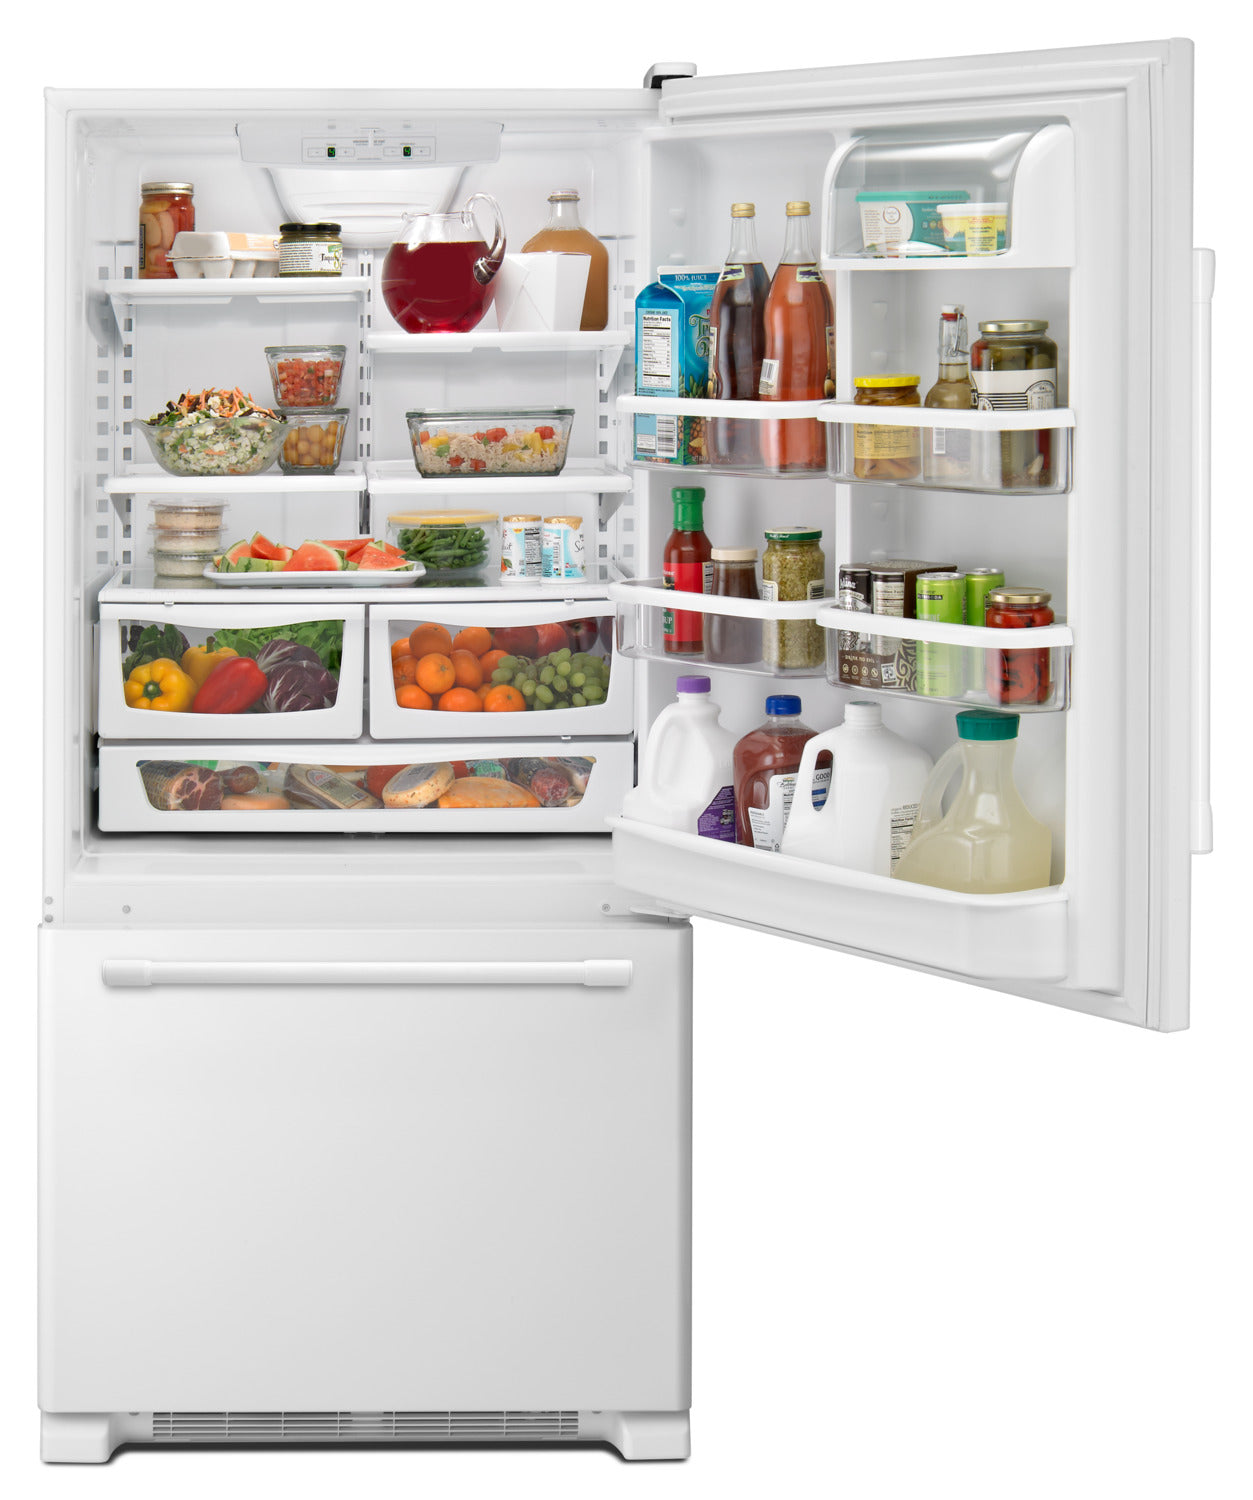 Maytag White Ice Bottom Freezer Refrigerator 186 Cu Ft Washer Schematics Group Picture Image By Tag Previous Next